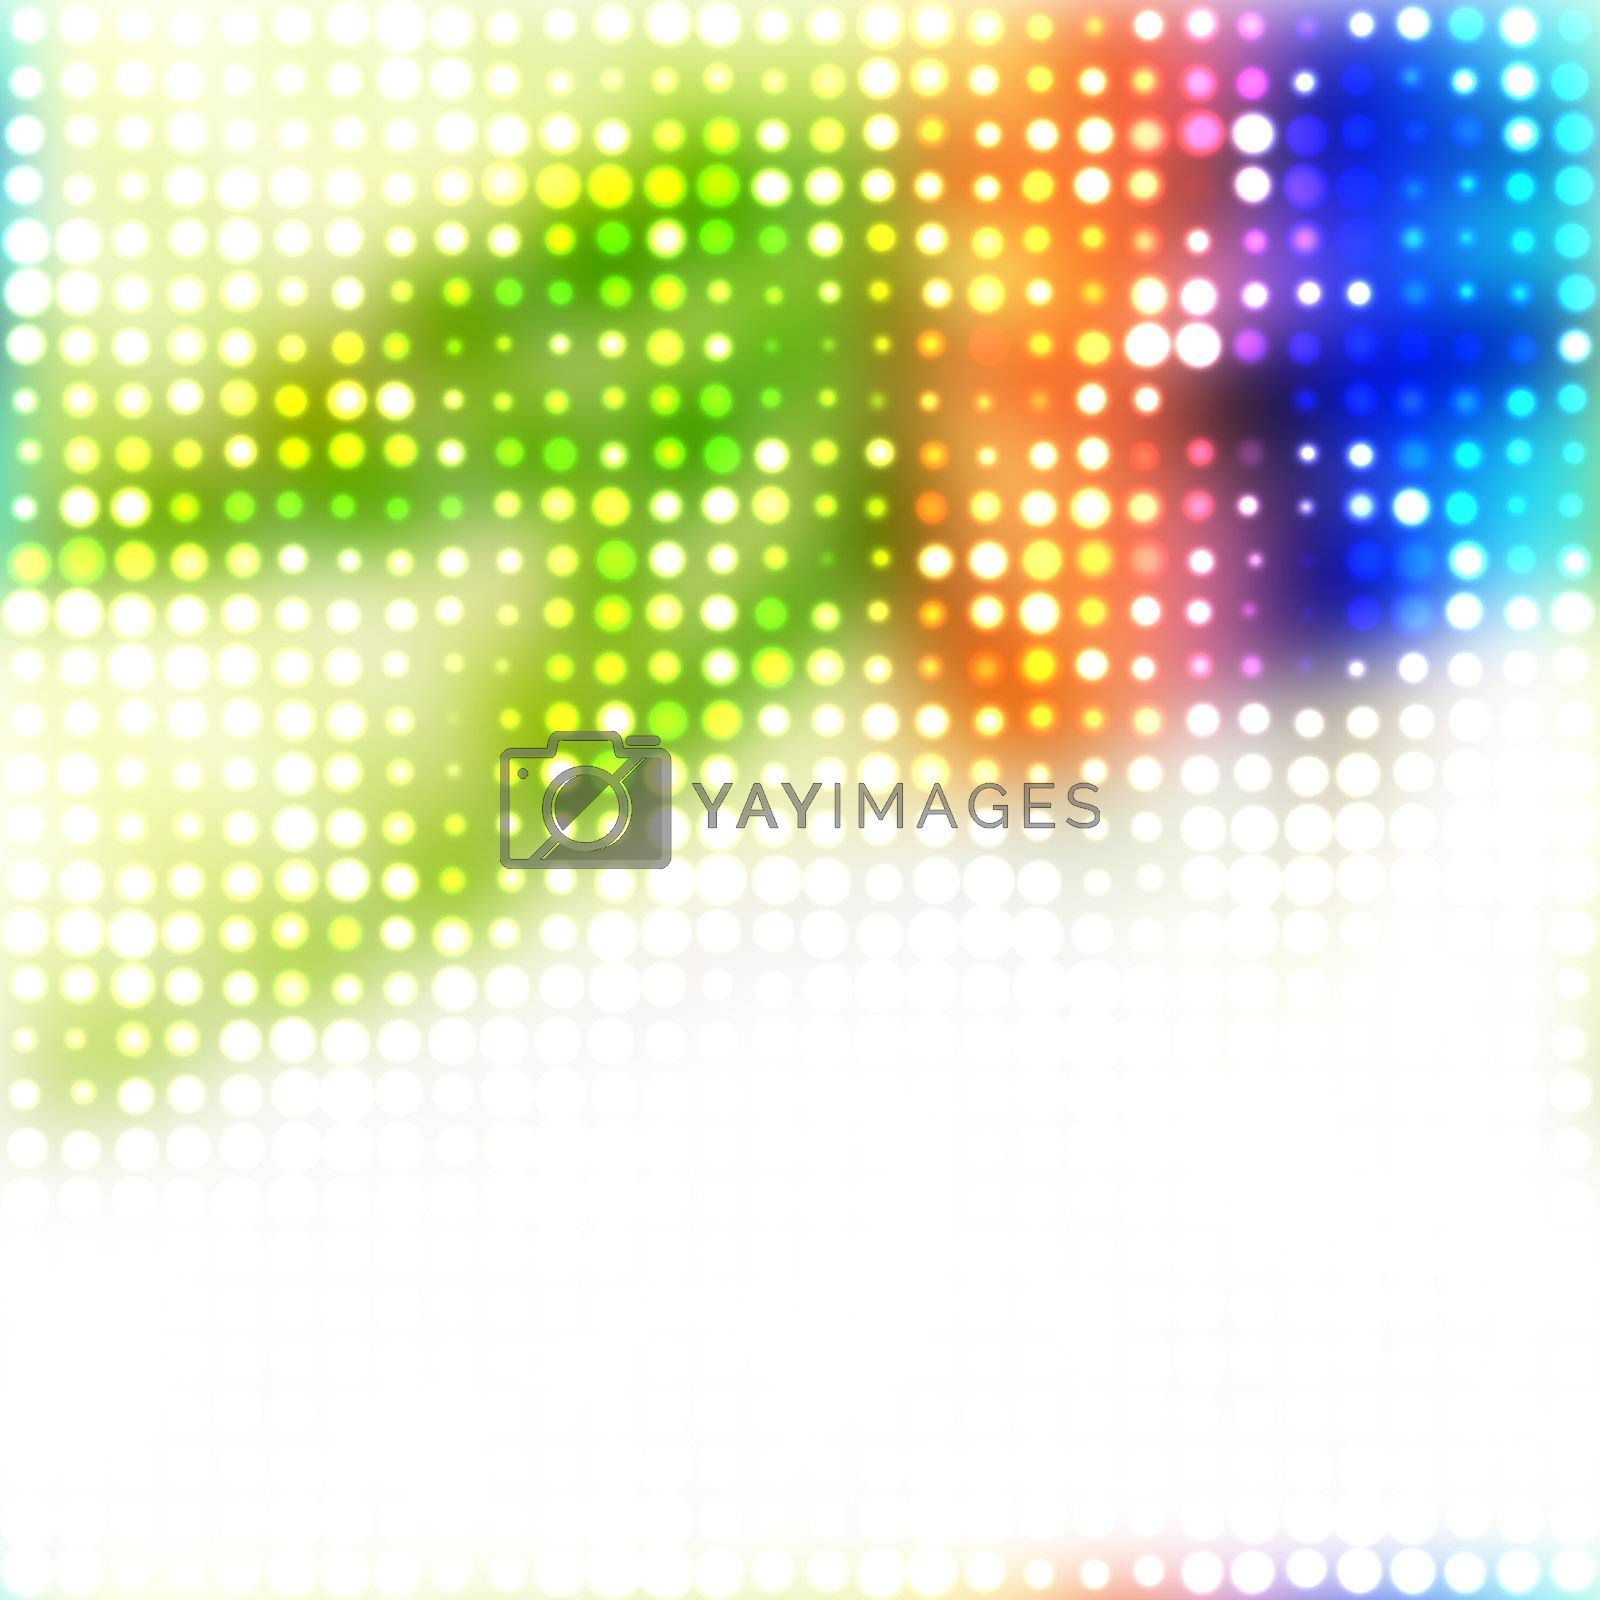 A rainbow colored halftone texture with glowing circles and plenty of copyspace. This image tiles seamlessly as a pattern in any direction.